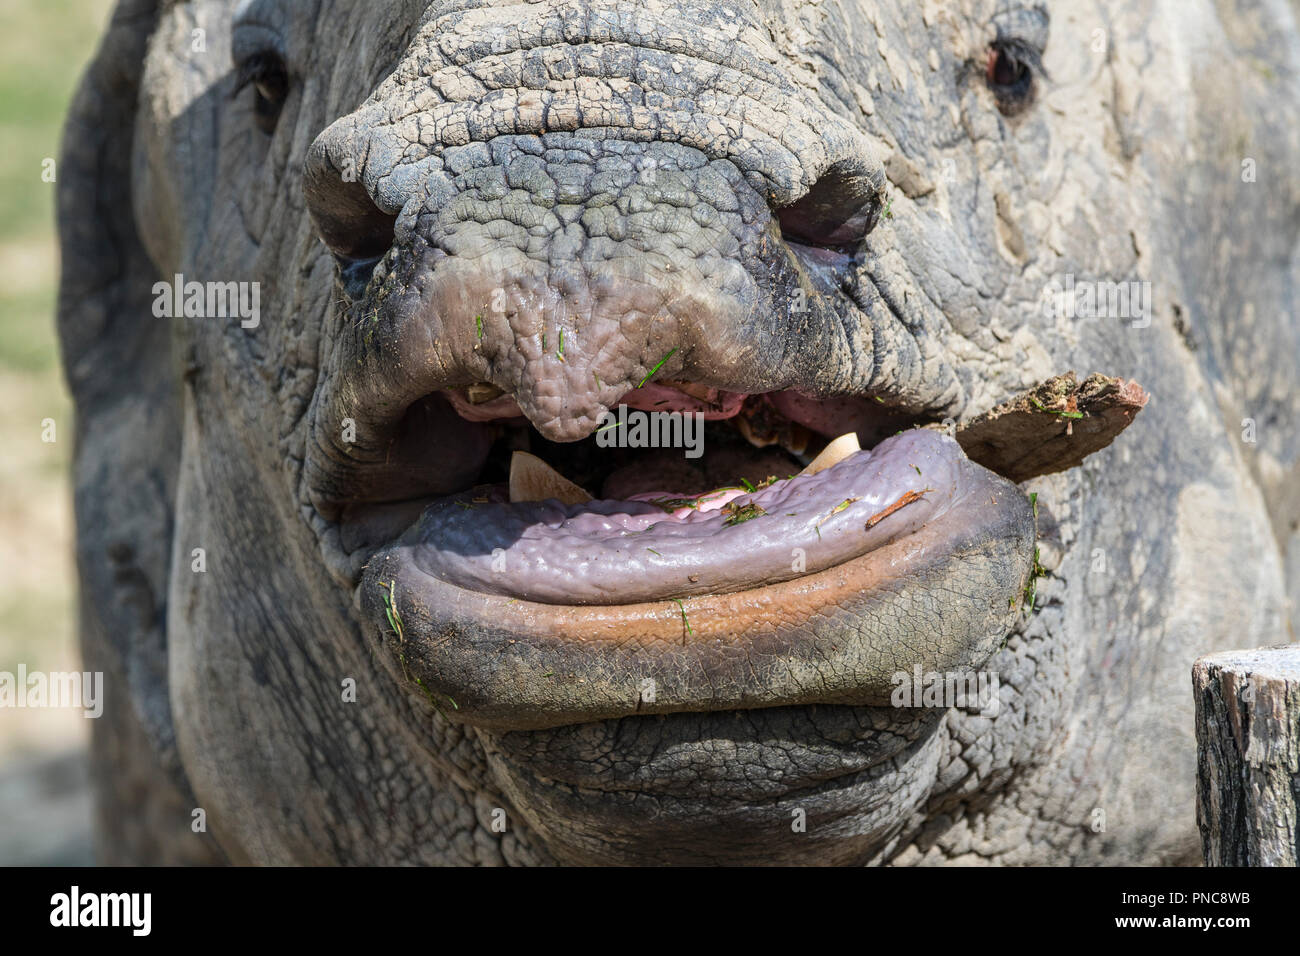 Indian rhinoceros (Rhinoceros unicornis) close up of snout showing sharp lower incisor teeth used for fighting - Stock Image